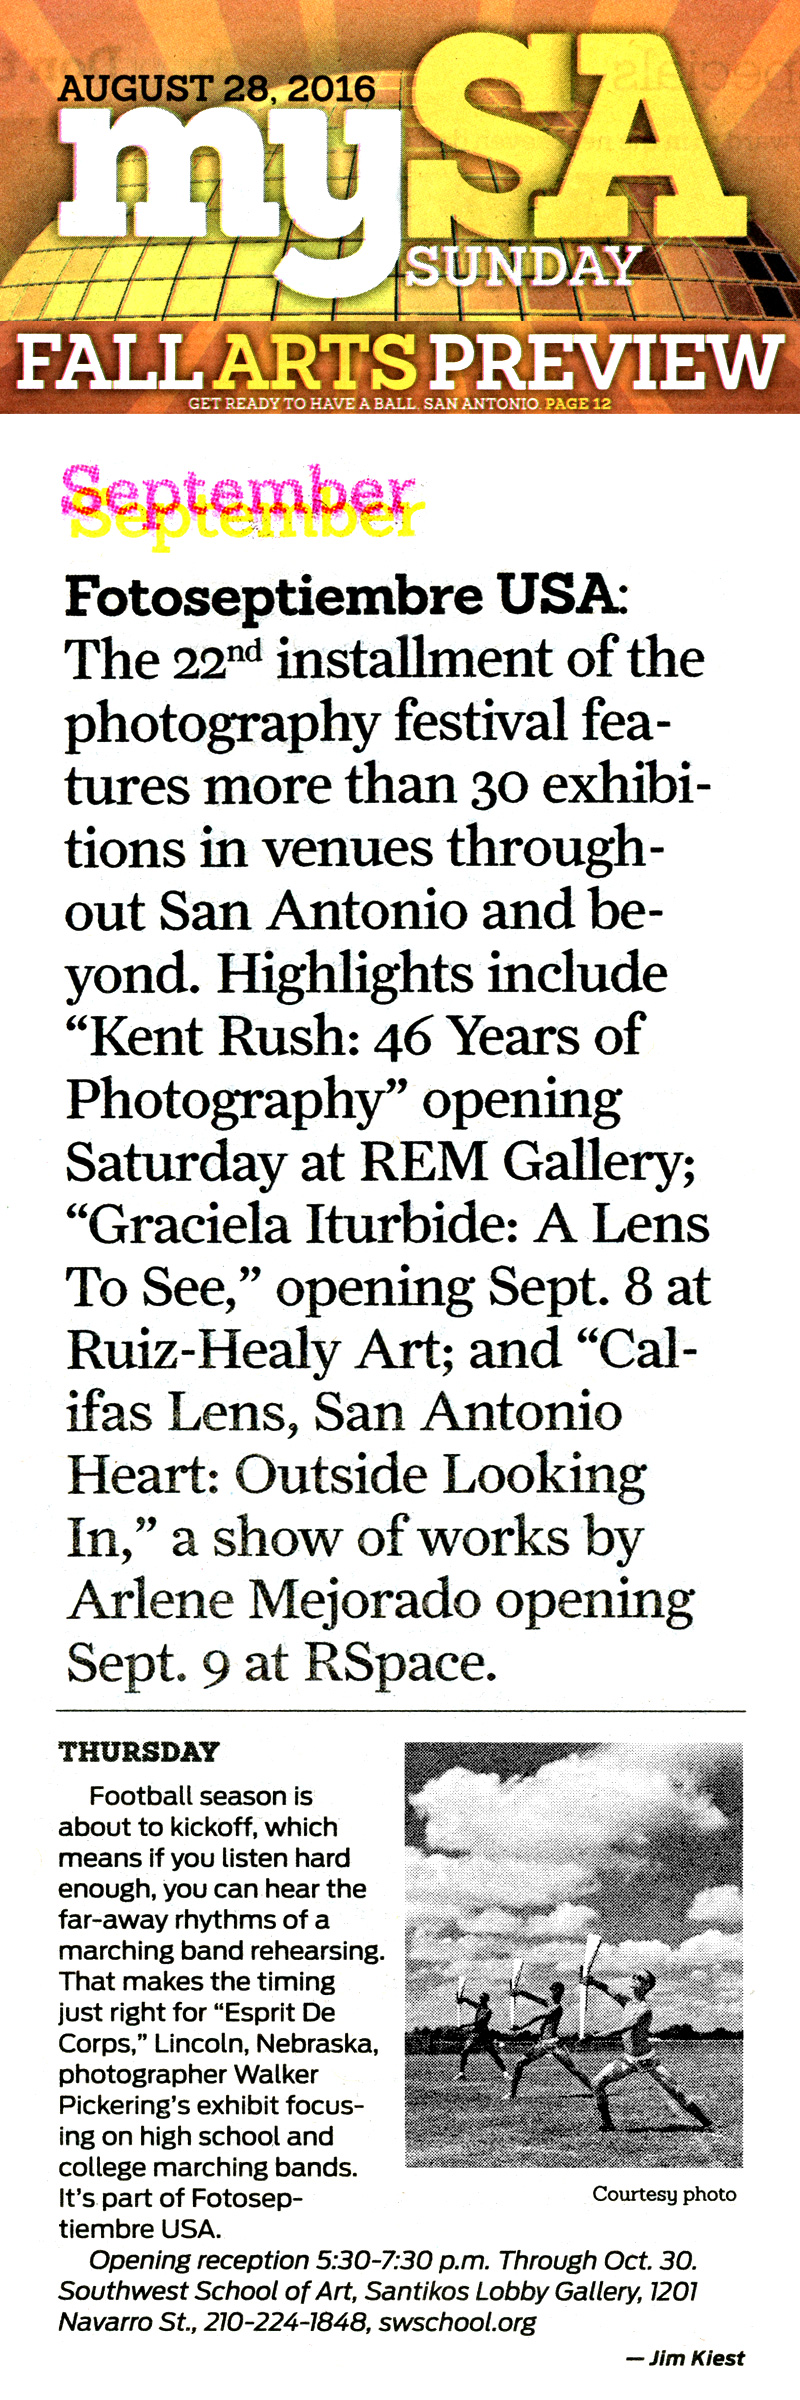 2016-FOTOSEPTIEMBRE-USA_Press-Archives_Fall-Arts-Preview_San-Antonio-Express-News